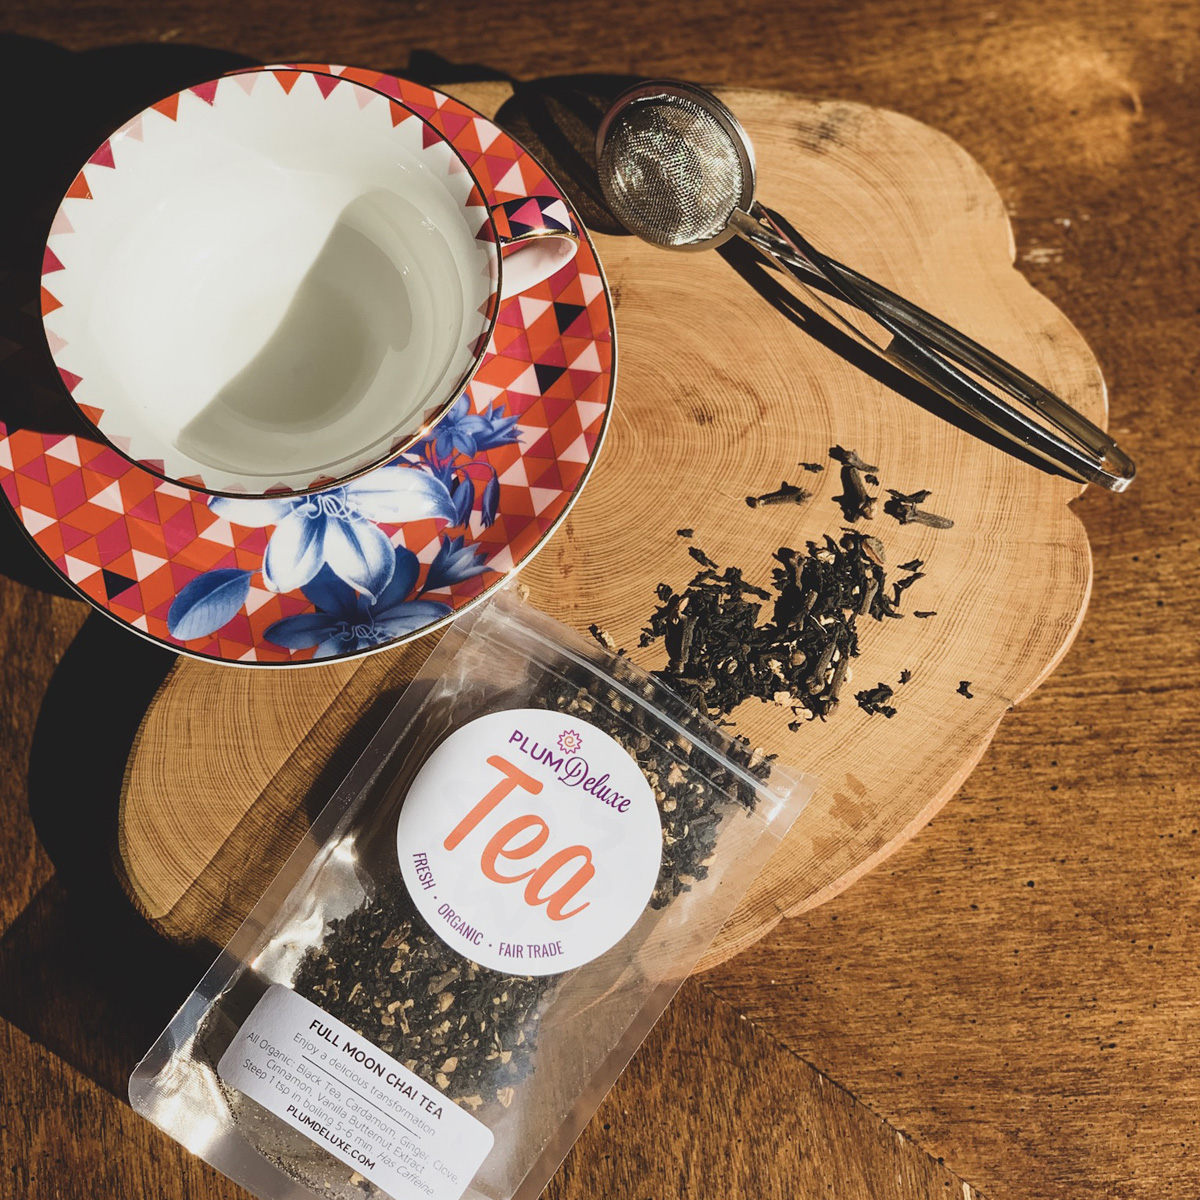 Overhead view of a red teacup, tea infuser, and bag of loose leaf chai on a wooden surface.